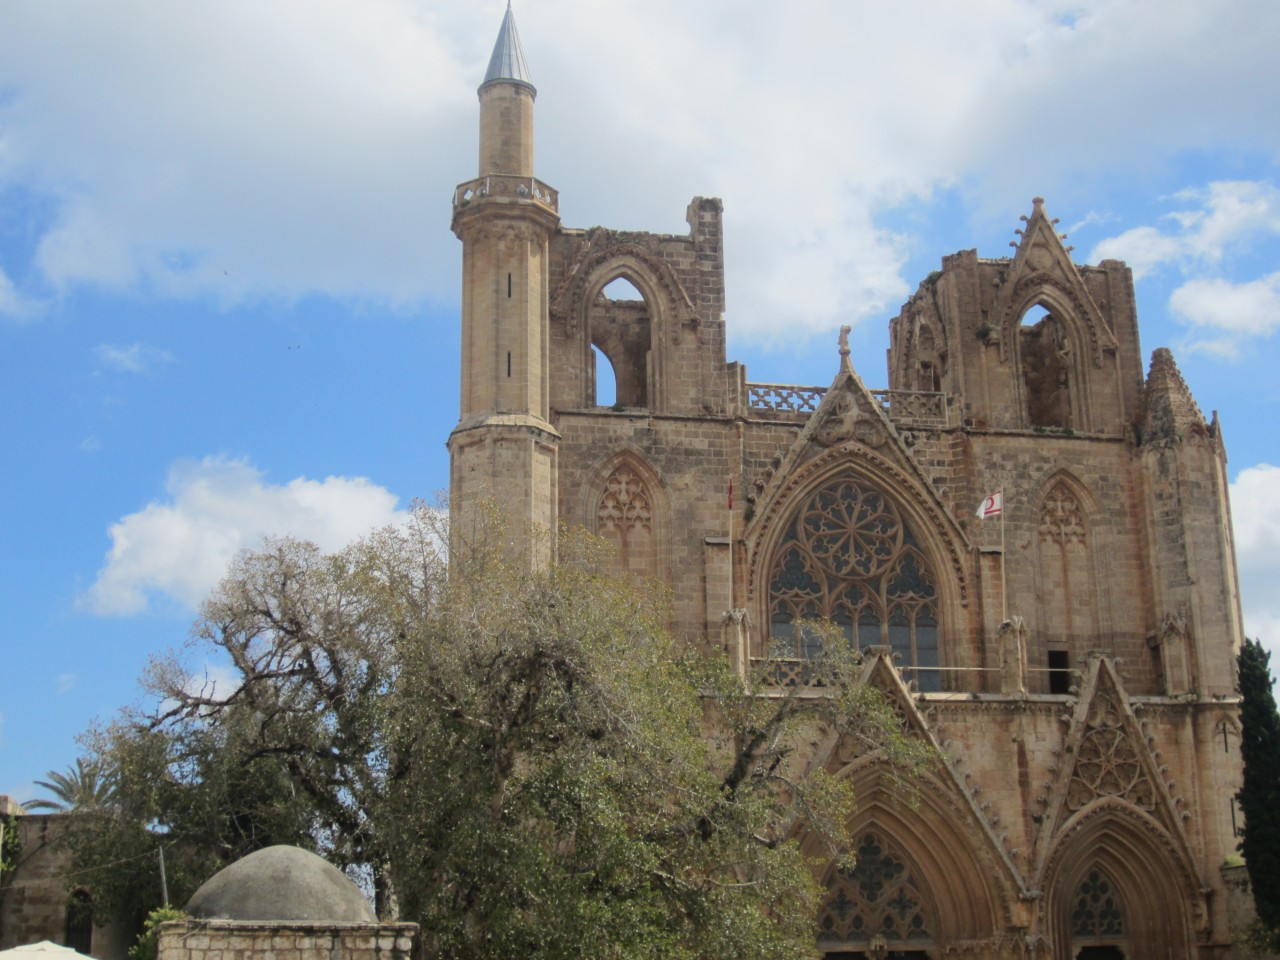 Famagusta's cathedral, turned into a mosque